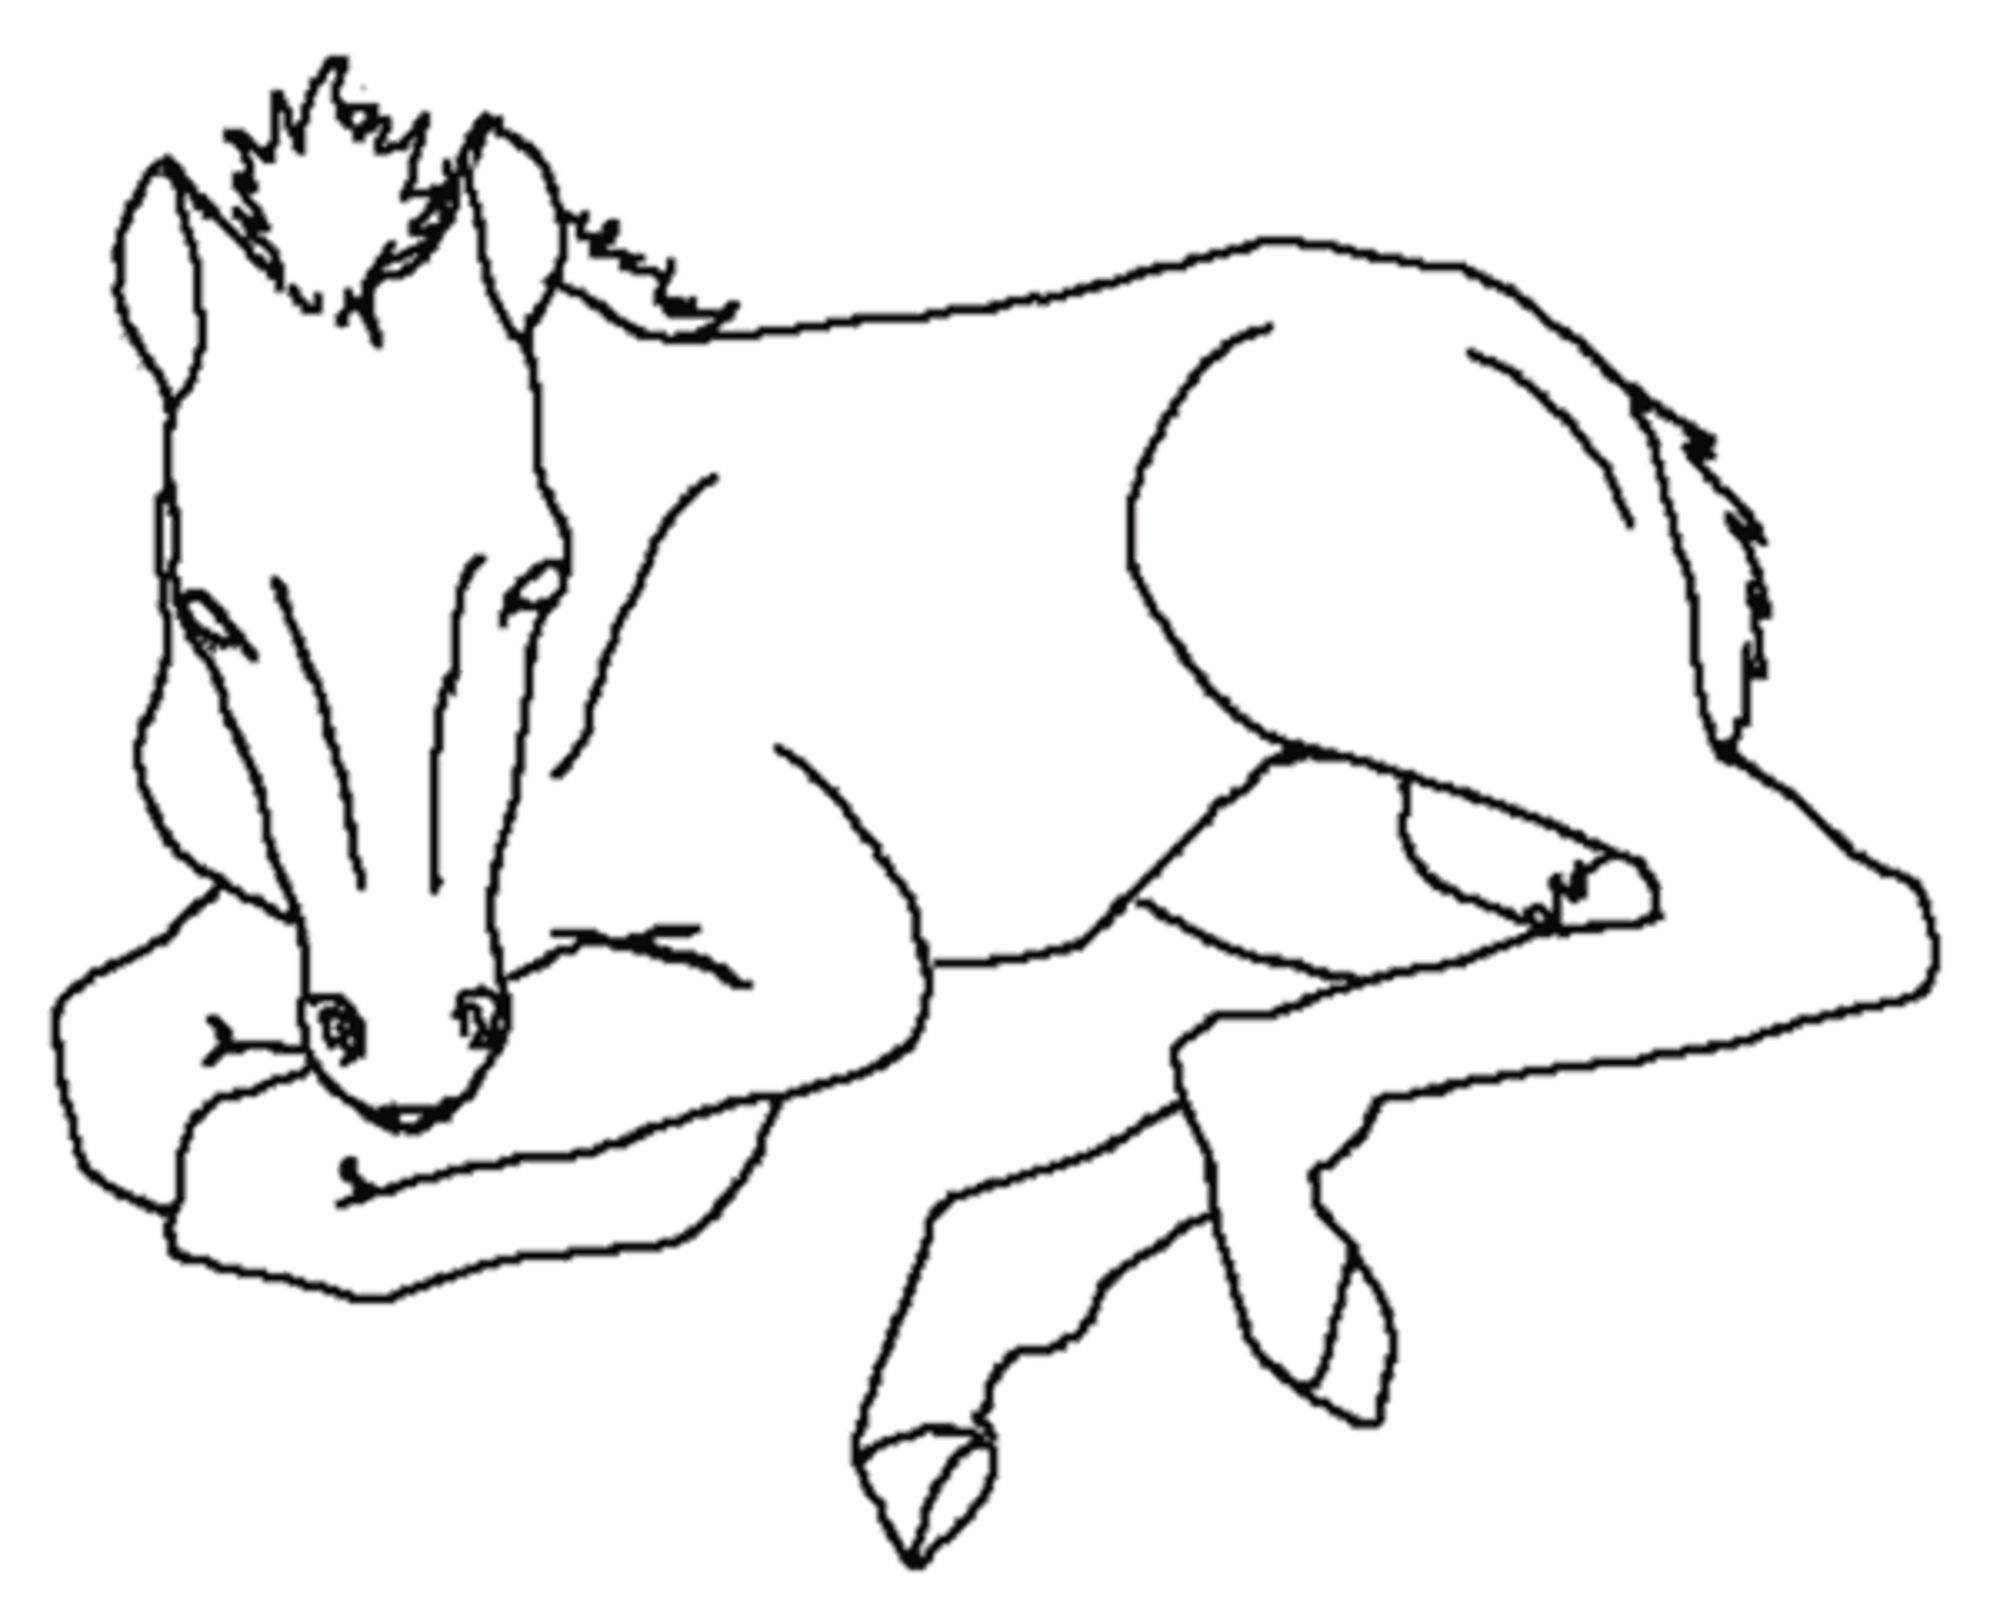 horse color sheet fun horse coloring pages for your kids printable sheet color horse